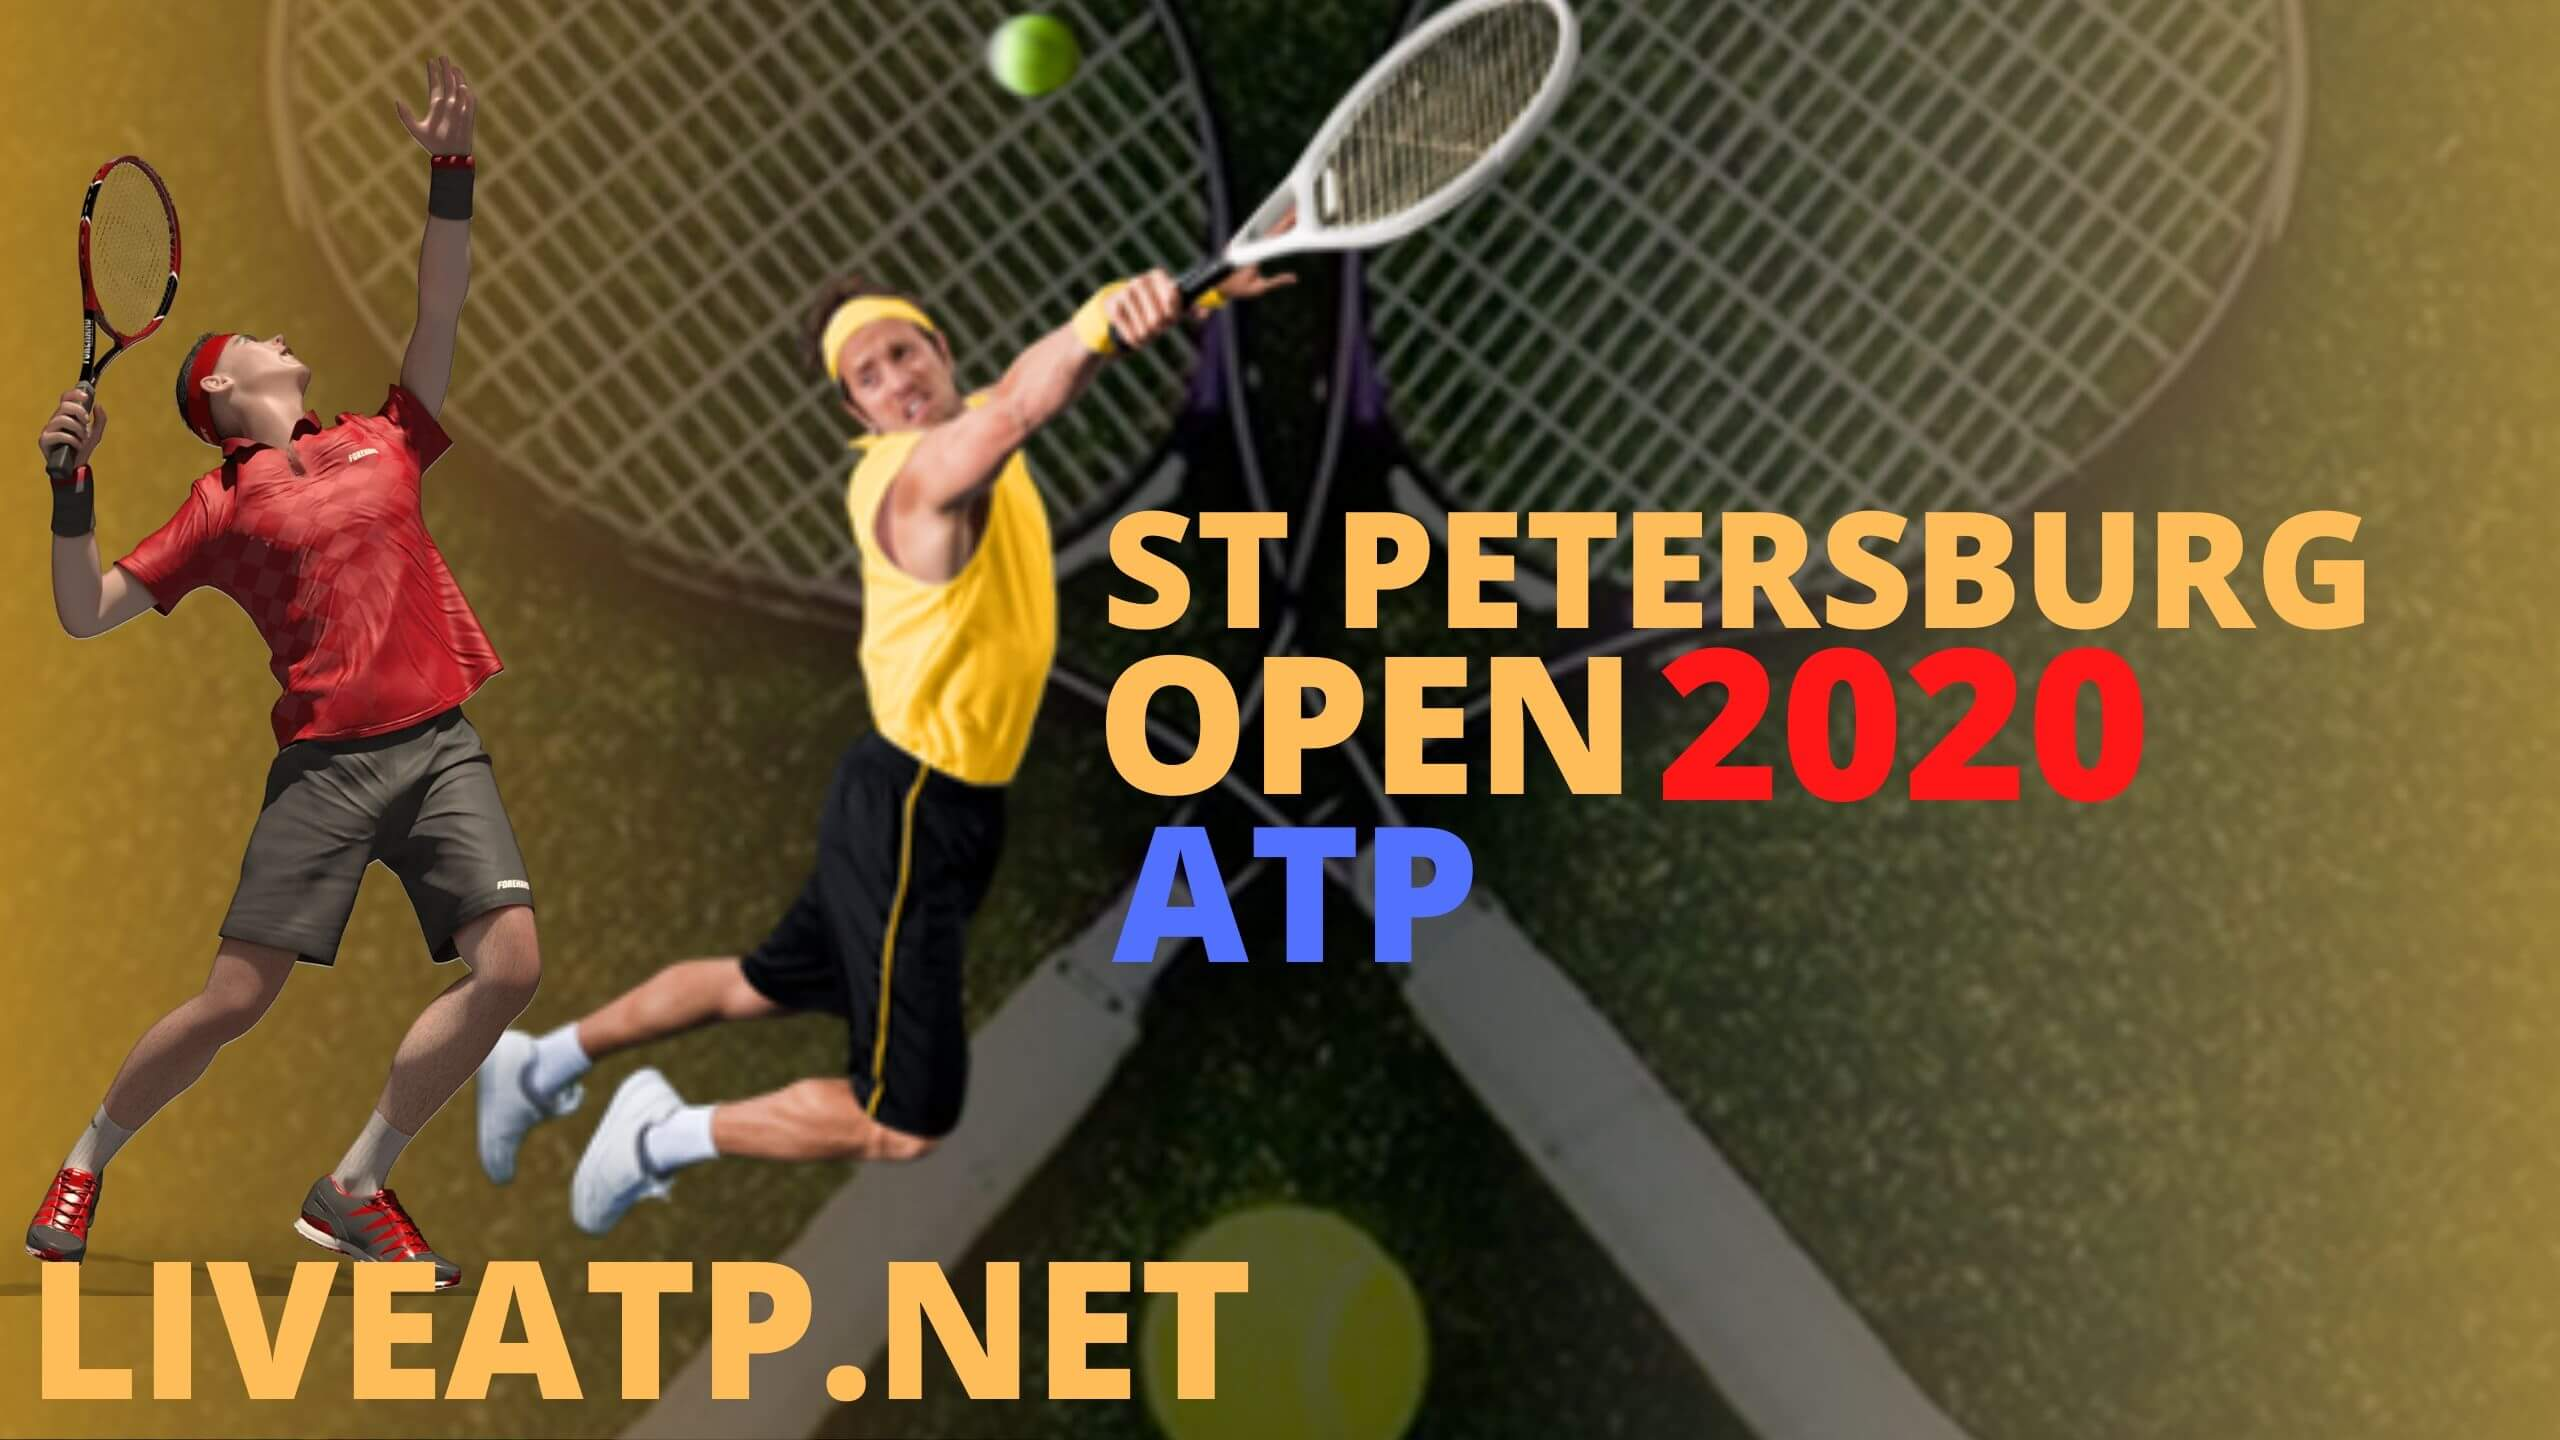 St Petersburg Open Live Stream 2020 | Day 5